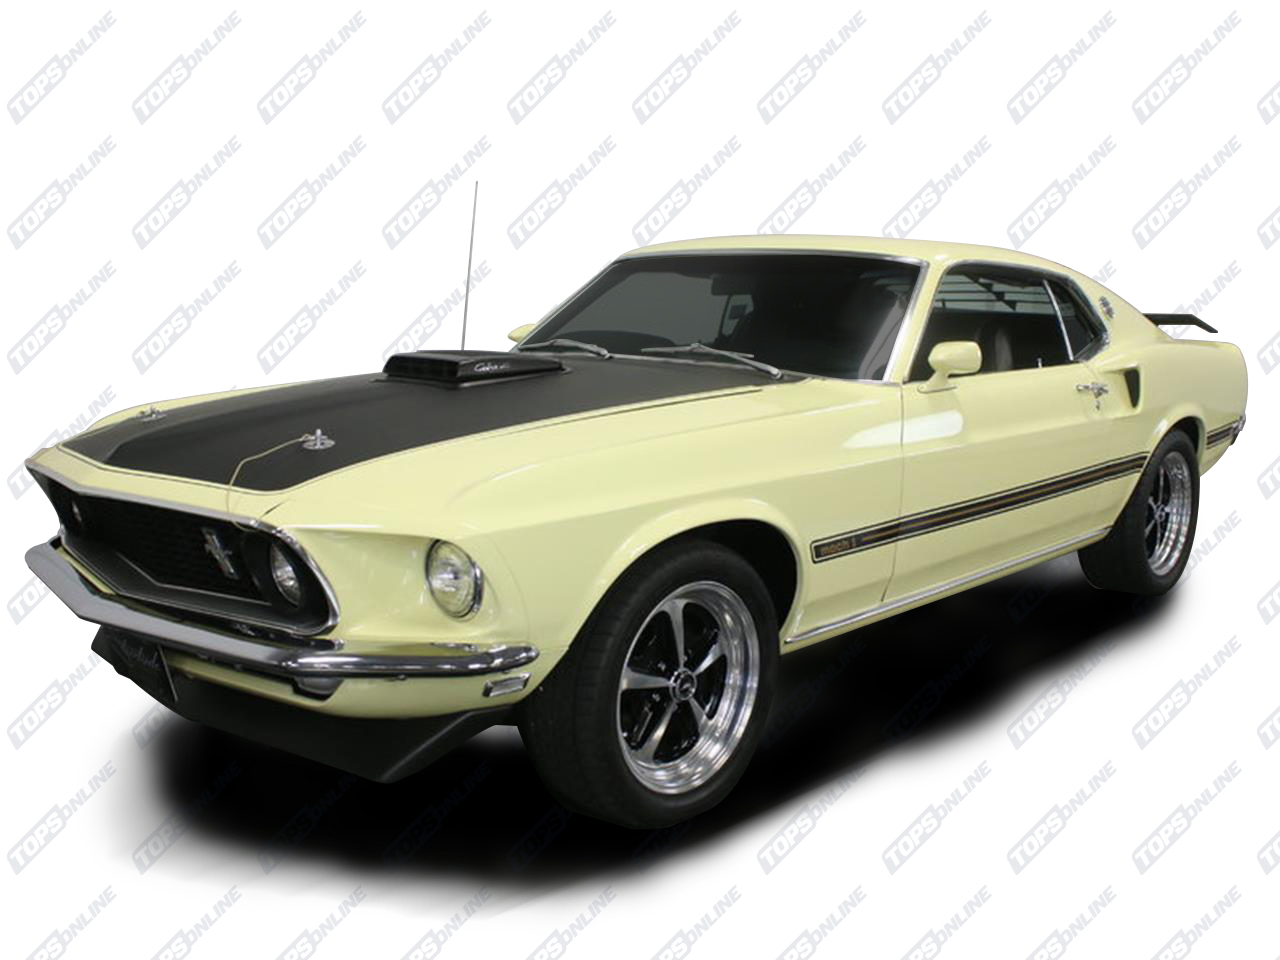 1969 ford mustang mach 1 shelby upholstery seat covers all. Black Bedroom Furniture Sets. Home Design Ideas